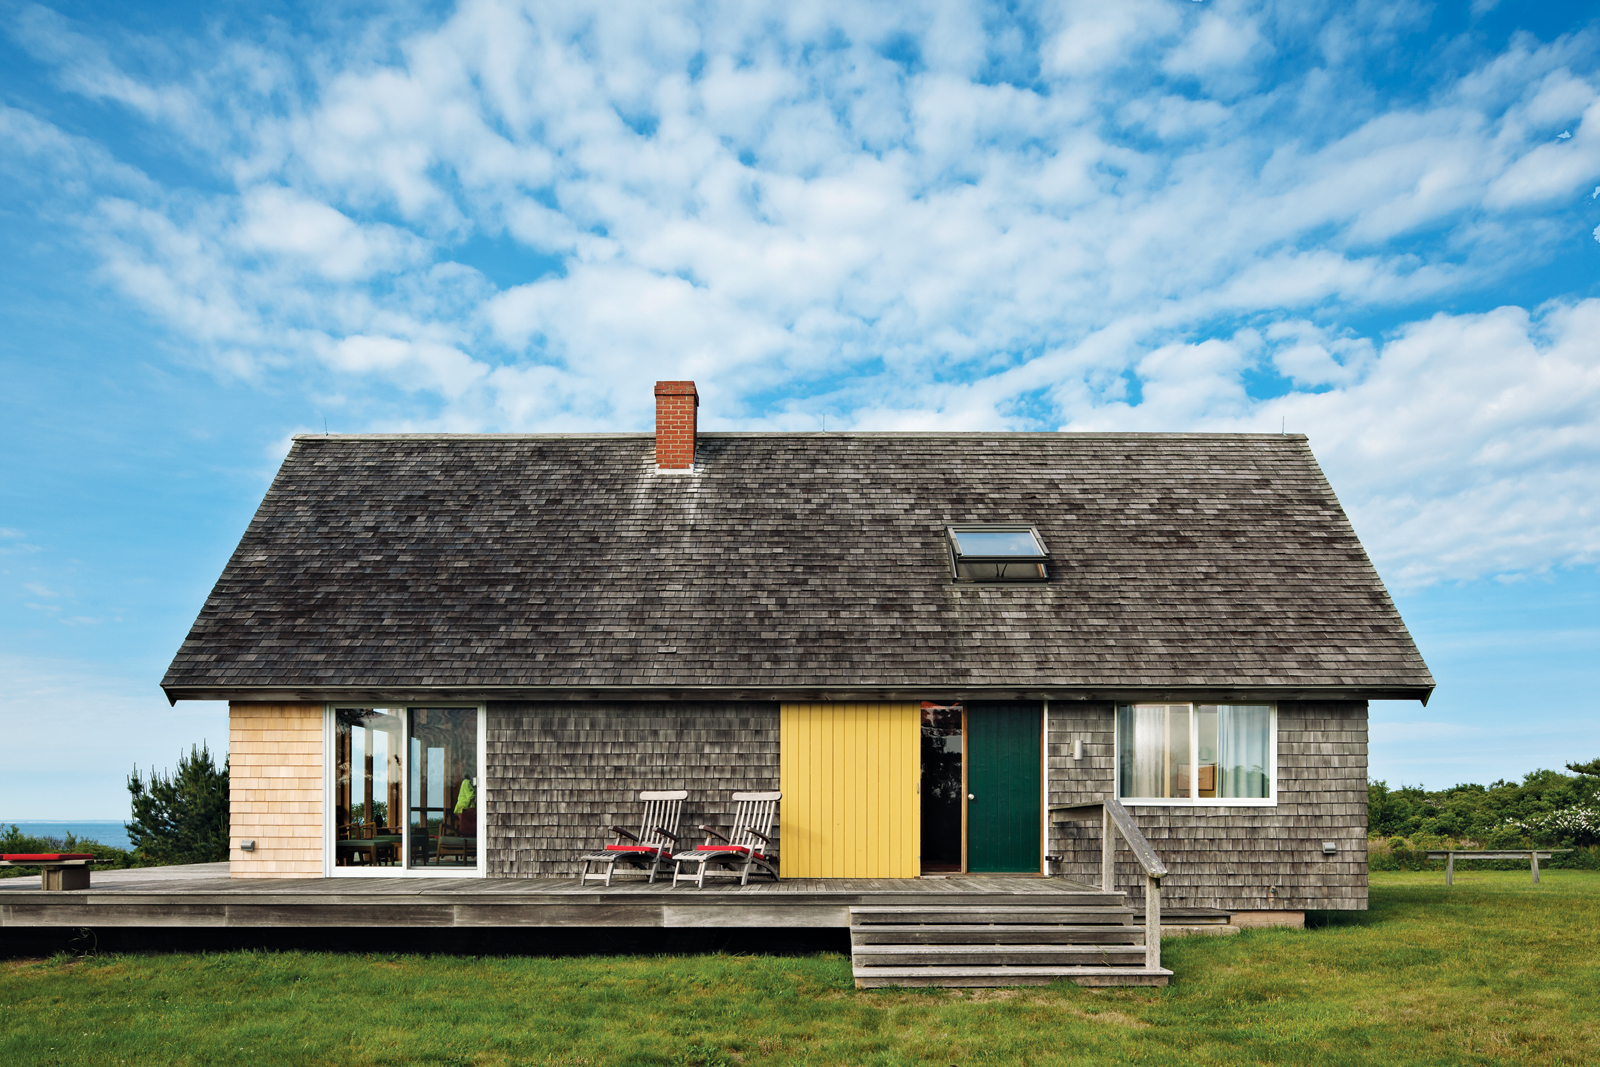 Designer Jens Risom's vacation home on Block Island